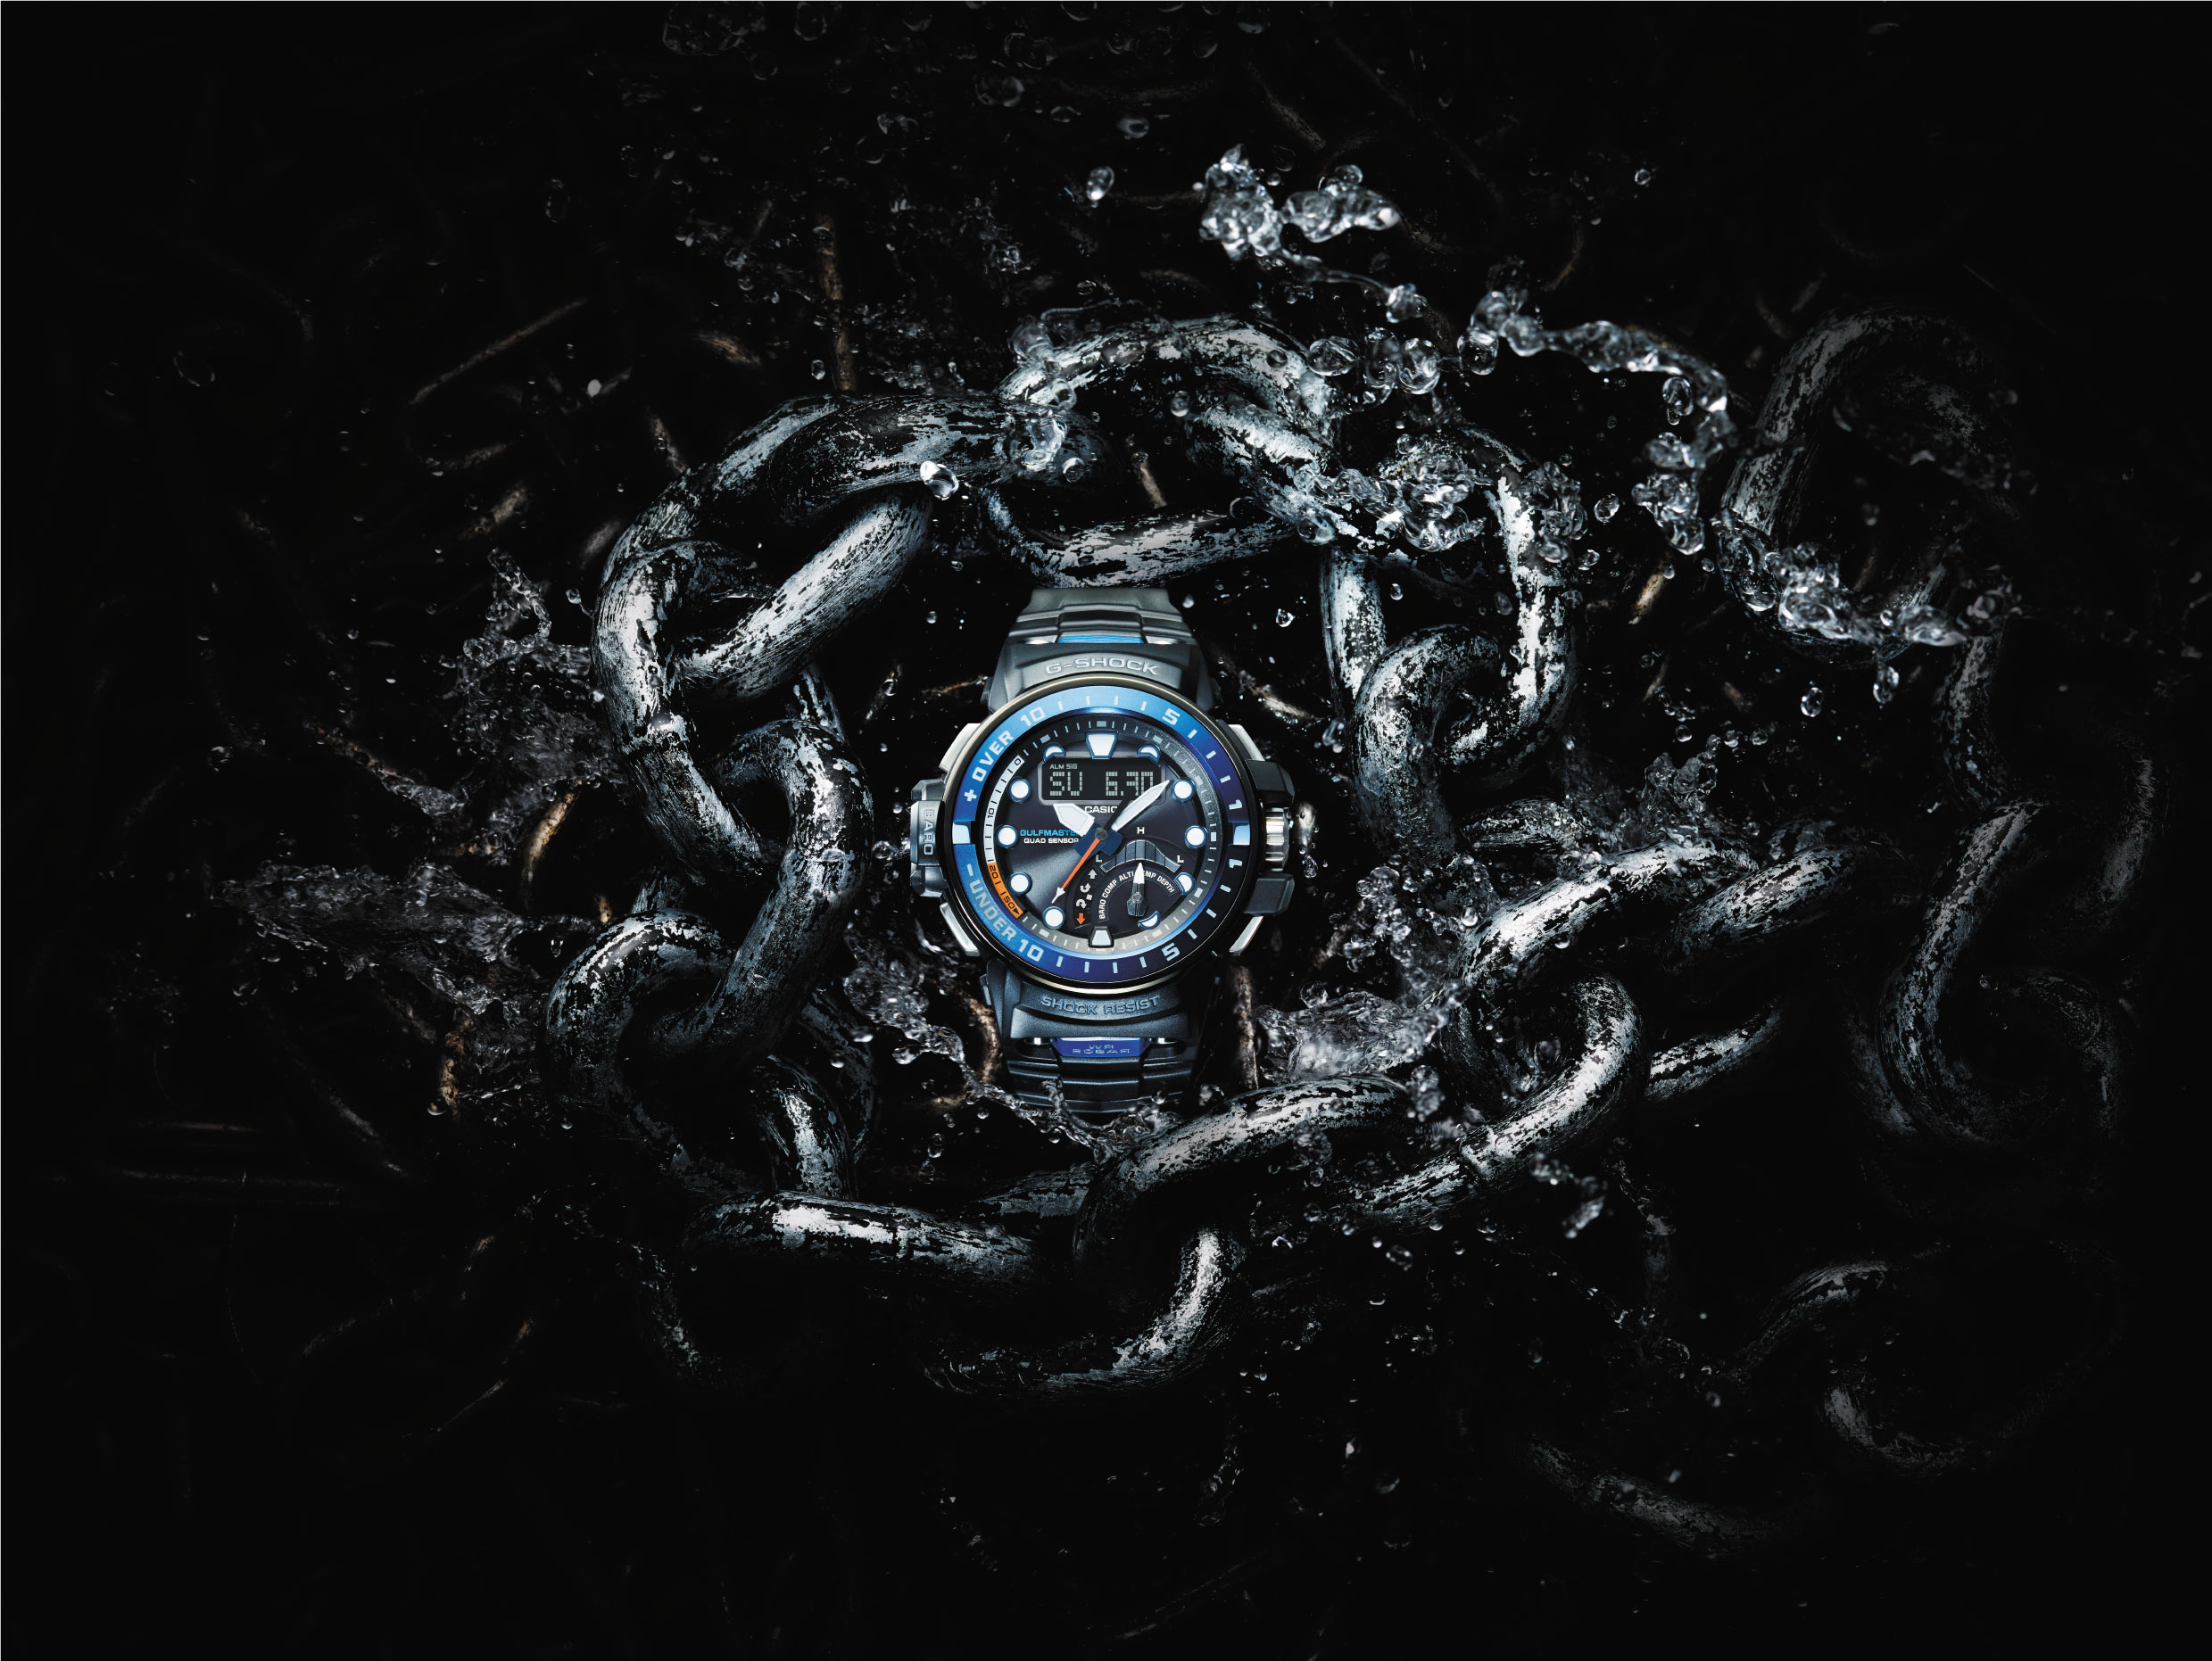 [Official] G-Shock Releases New Gulfmaster With First-Ever Quad Sensor Technology